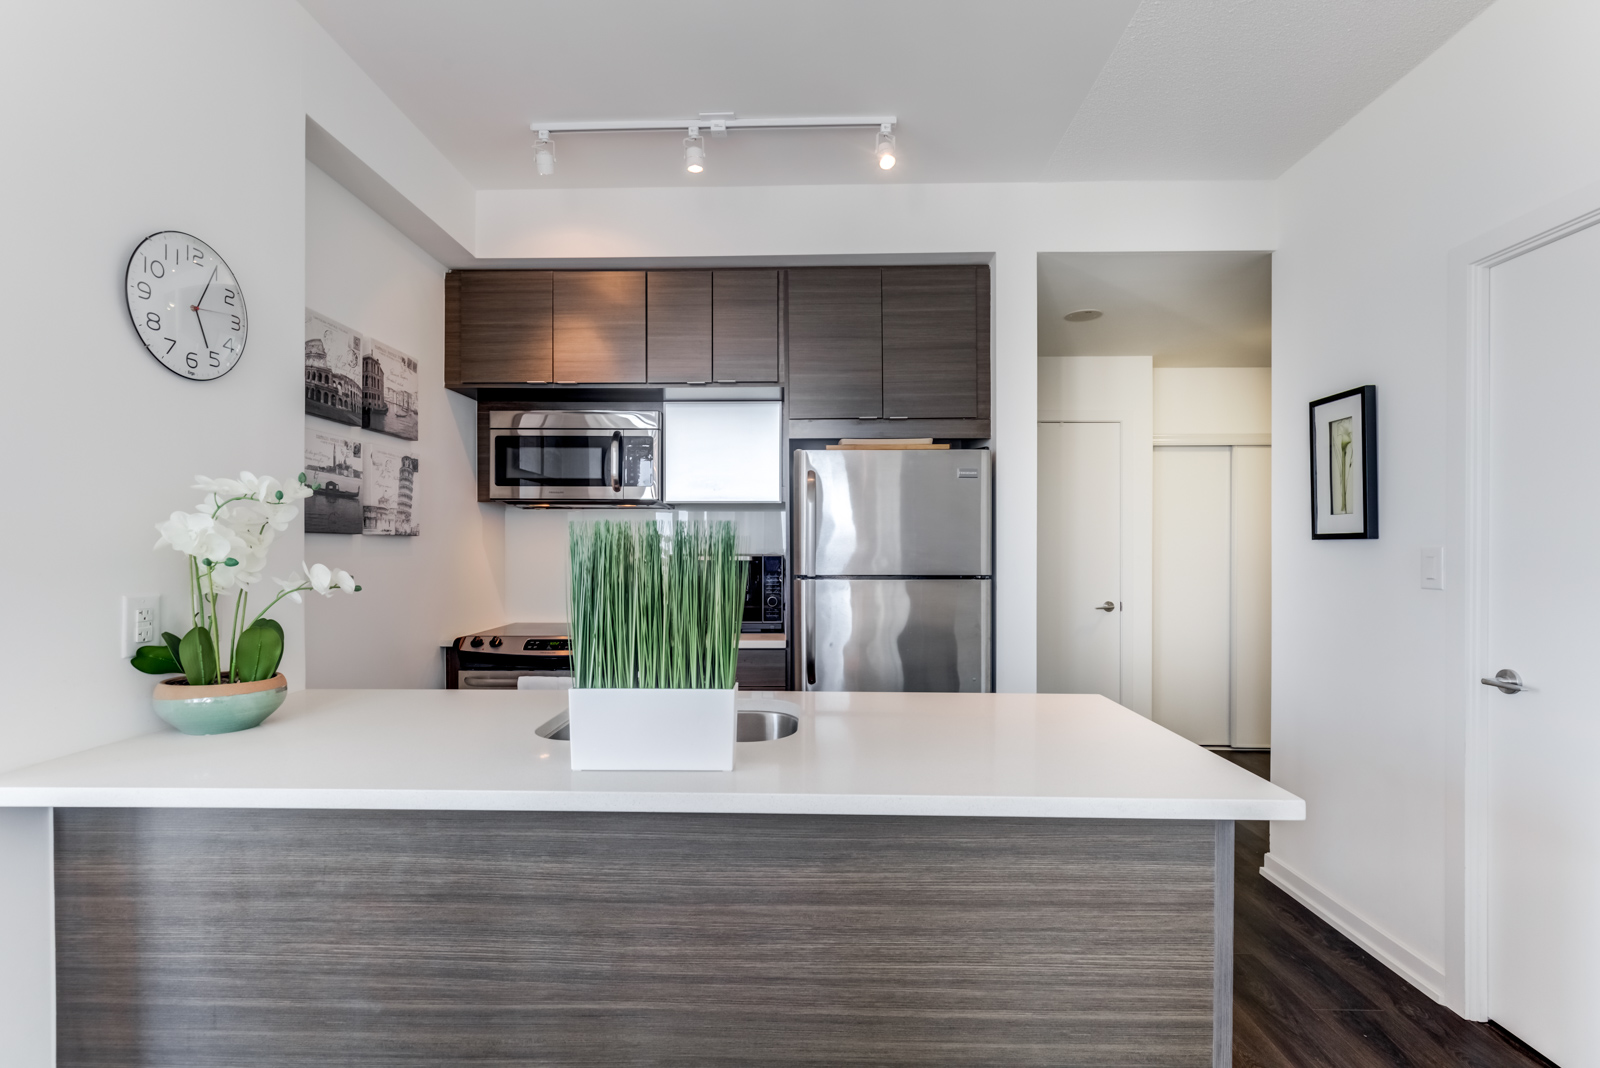 Breakfast bar with white granite counter, green plant and kitchen appliances in background.